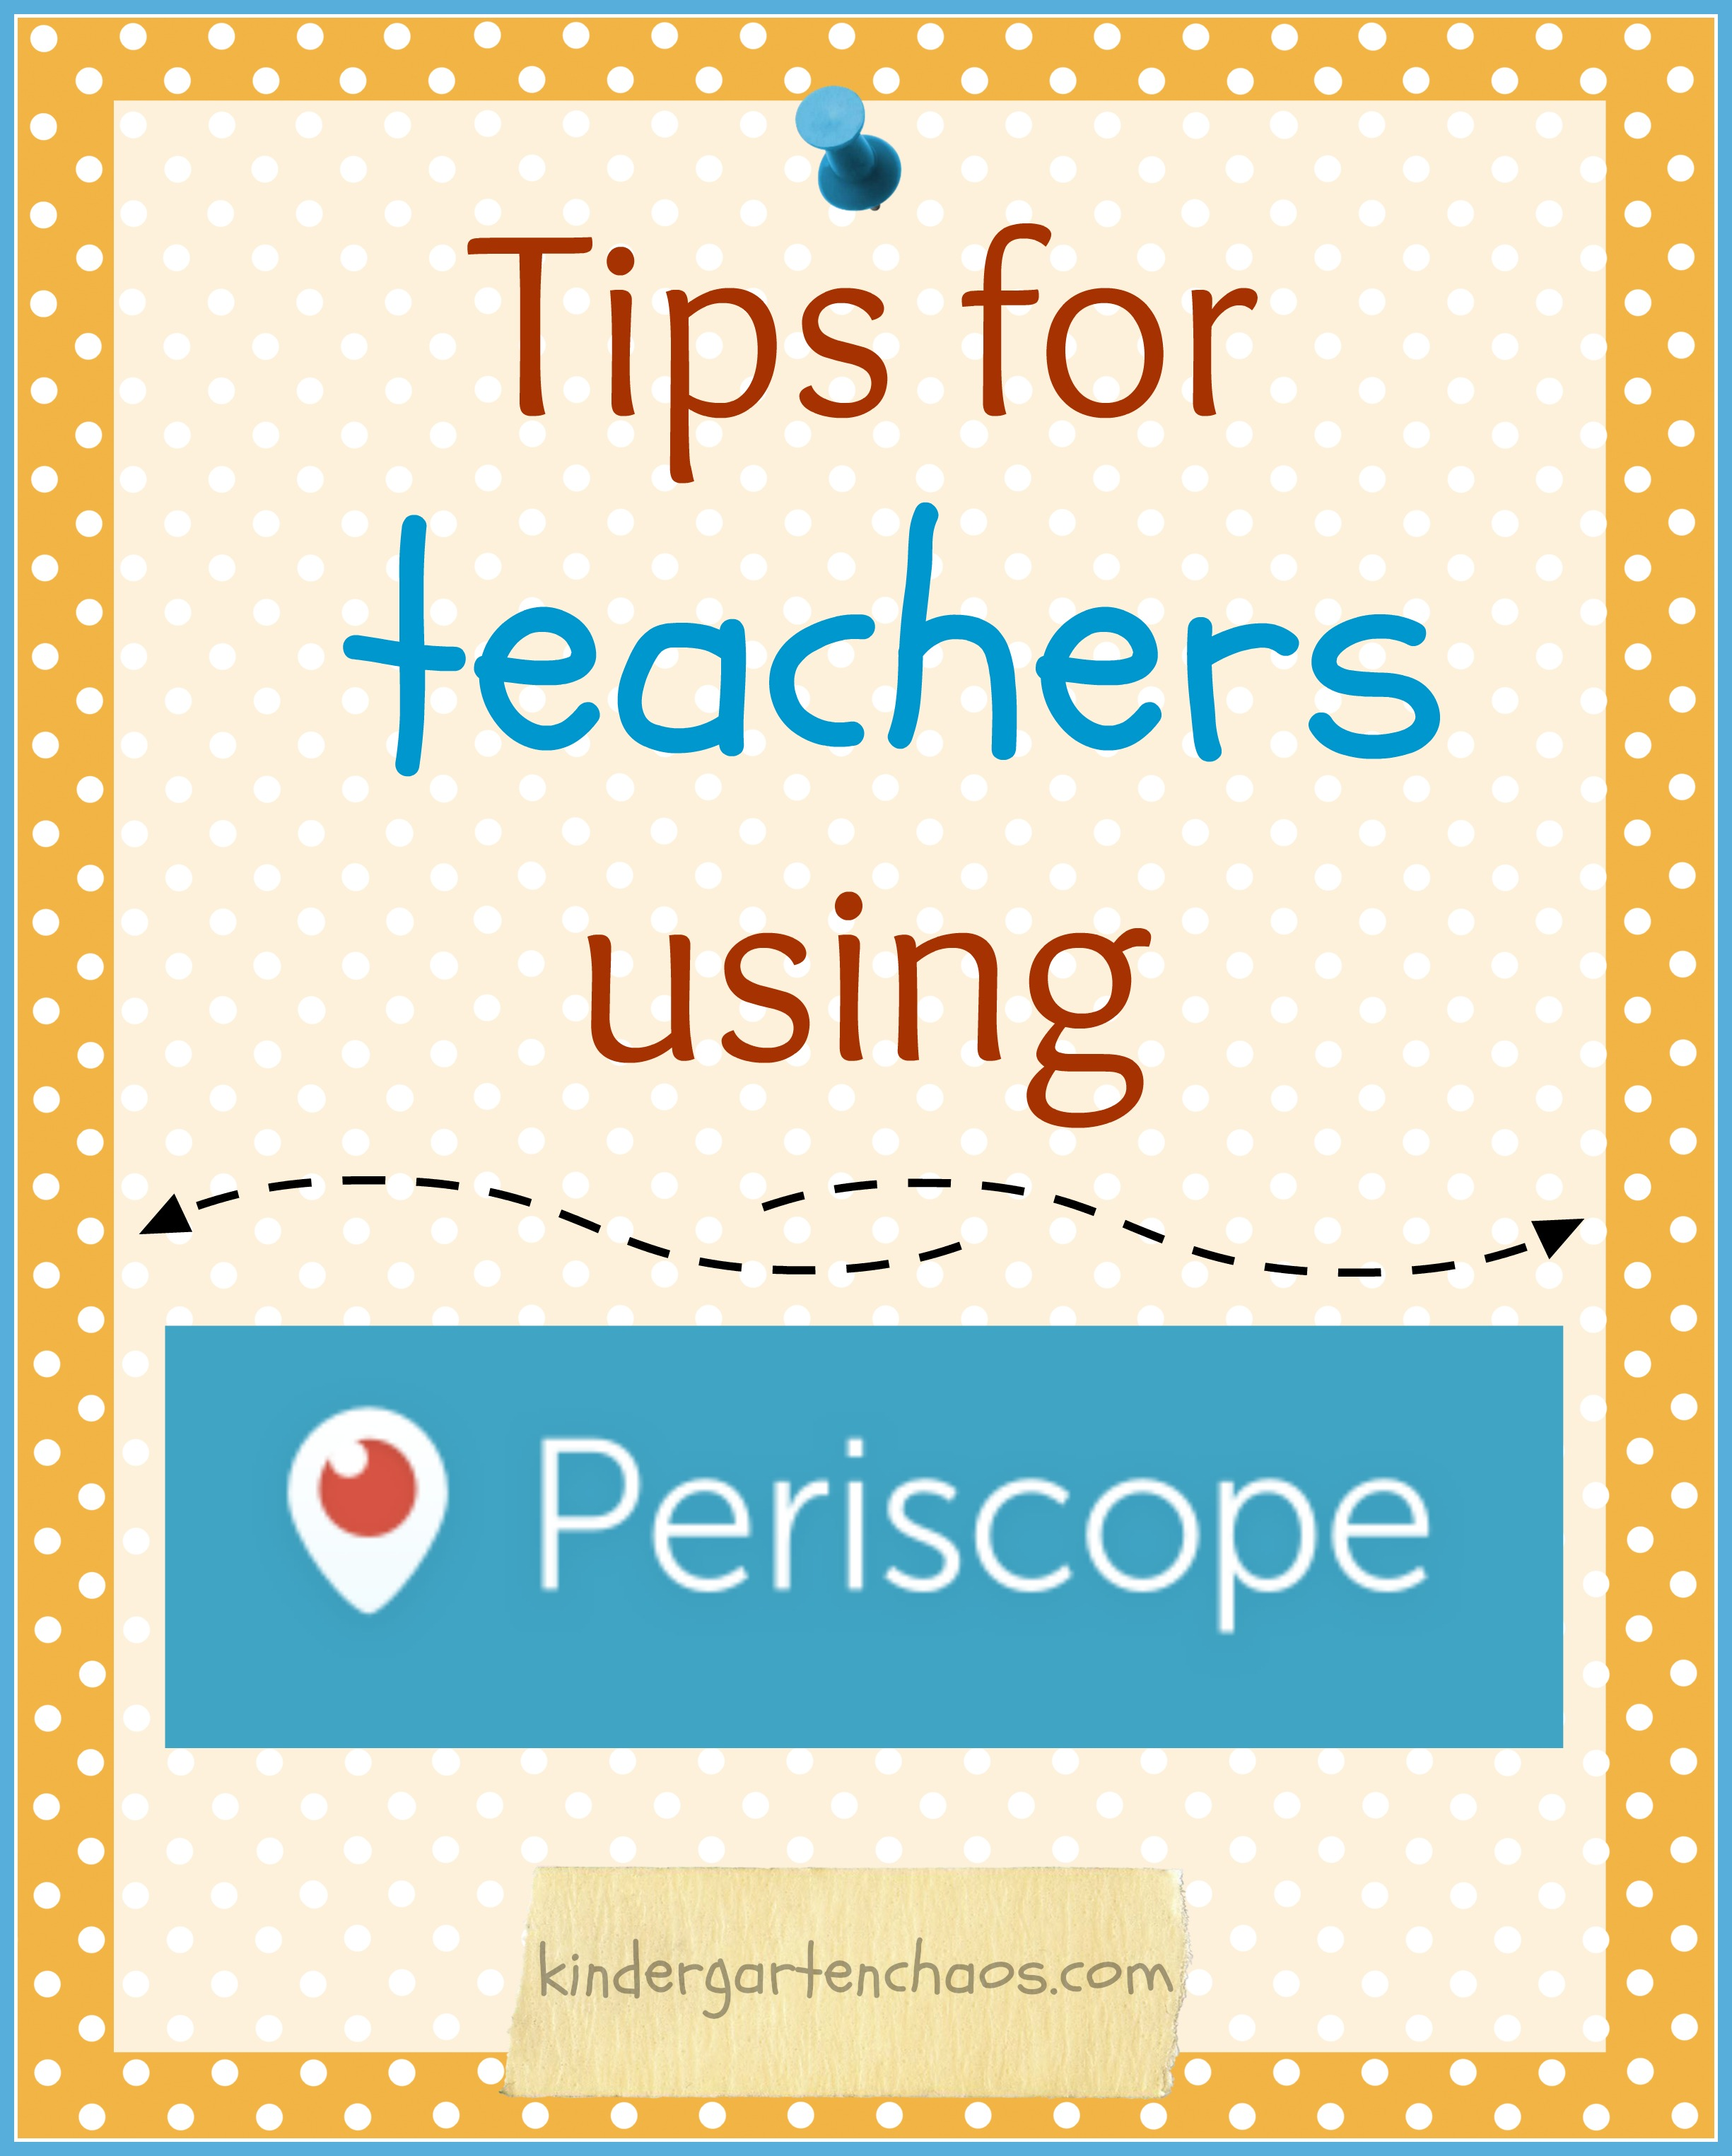 Teacher Tips for Periscope